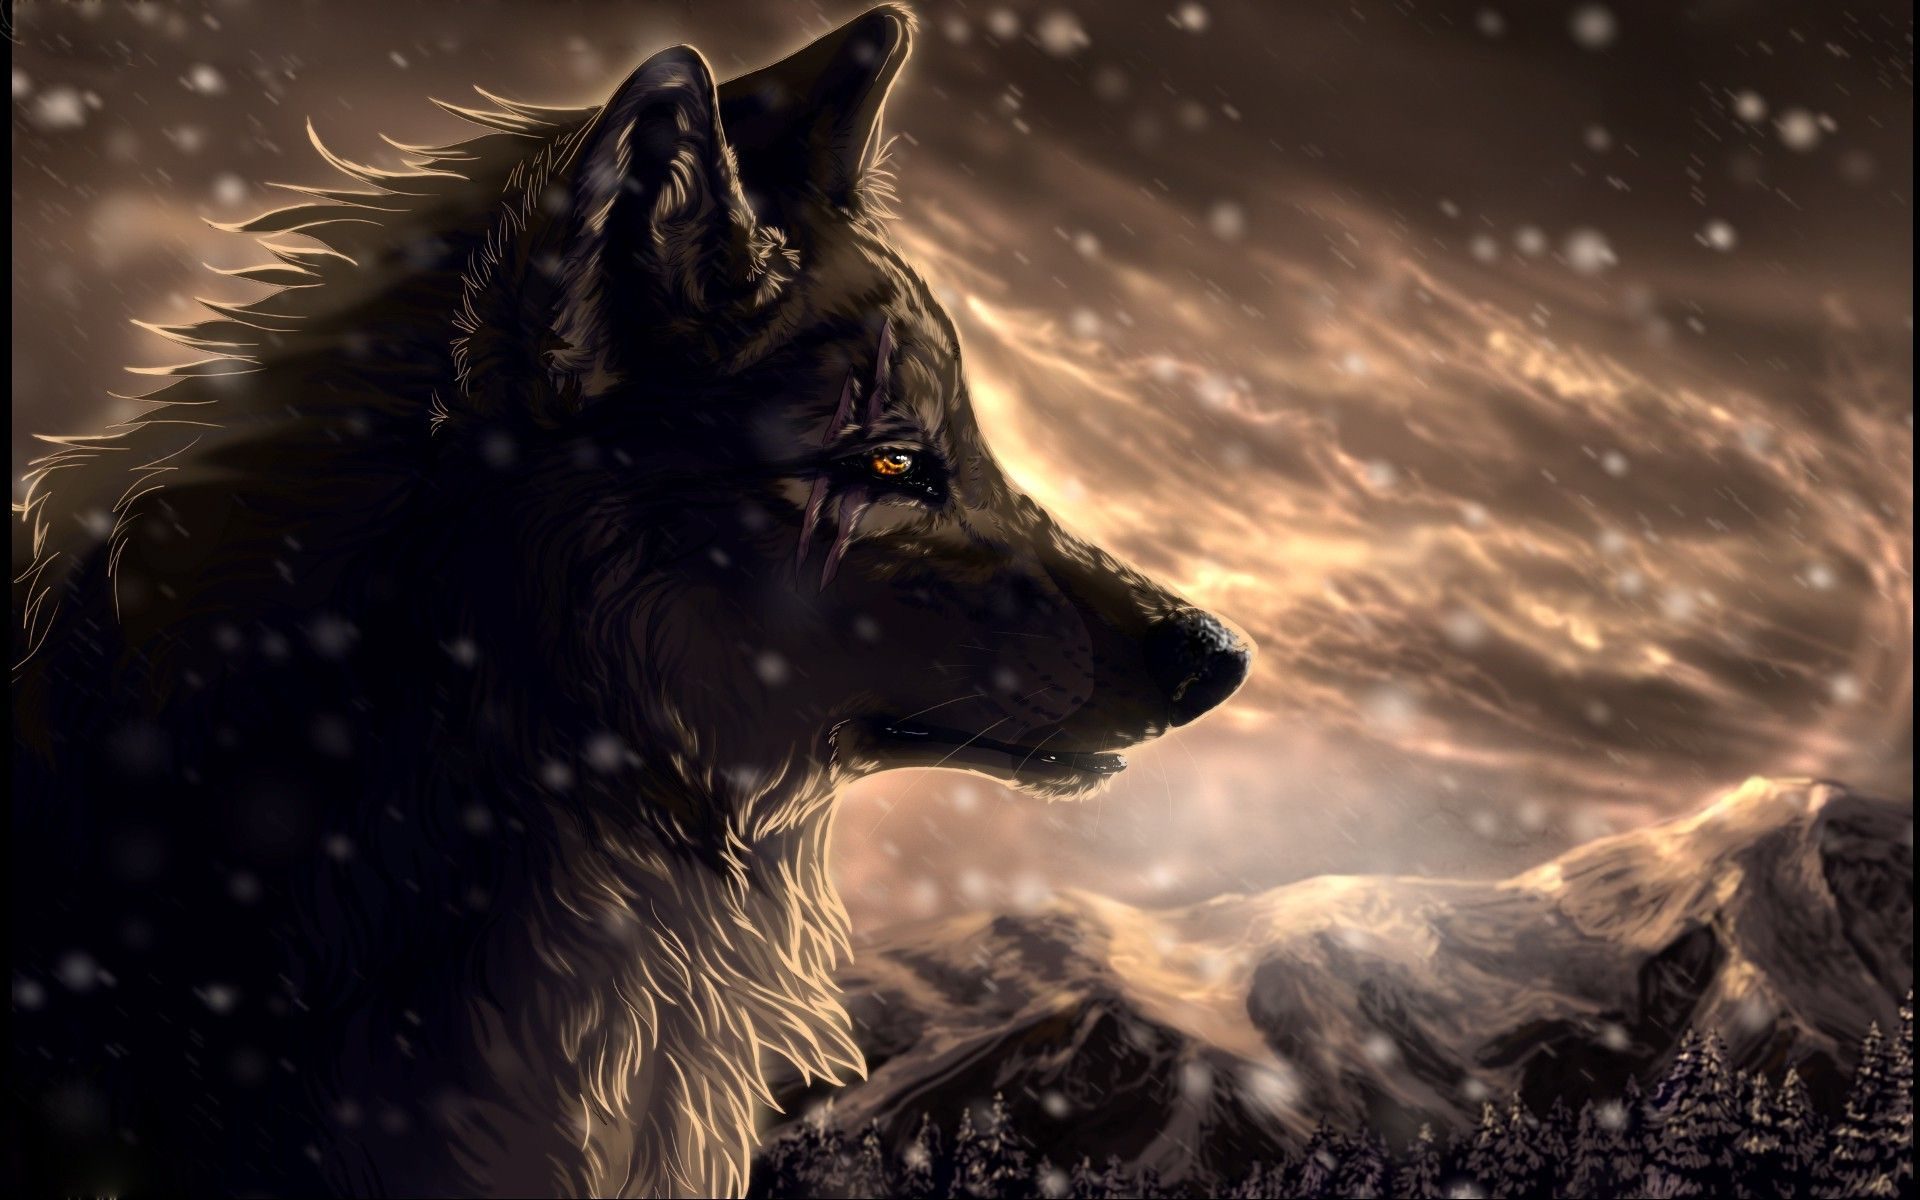 X Cool Anime Wolf Wallpapers  Images  C B Download  C B X Cool Anime Wolf Wallpapers